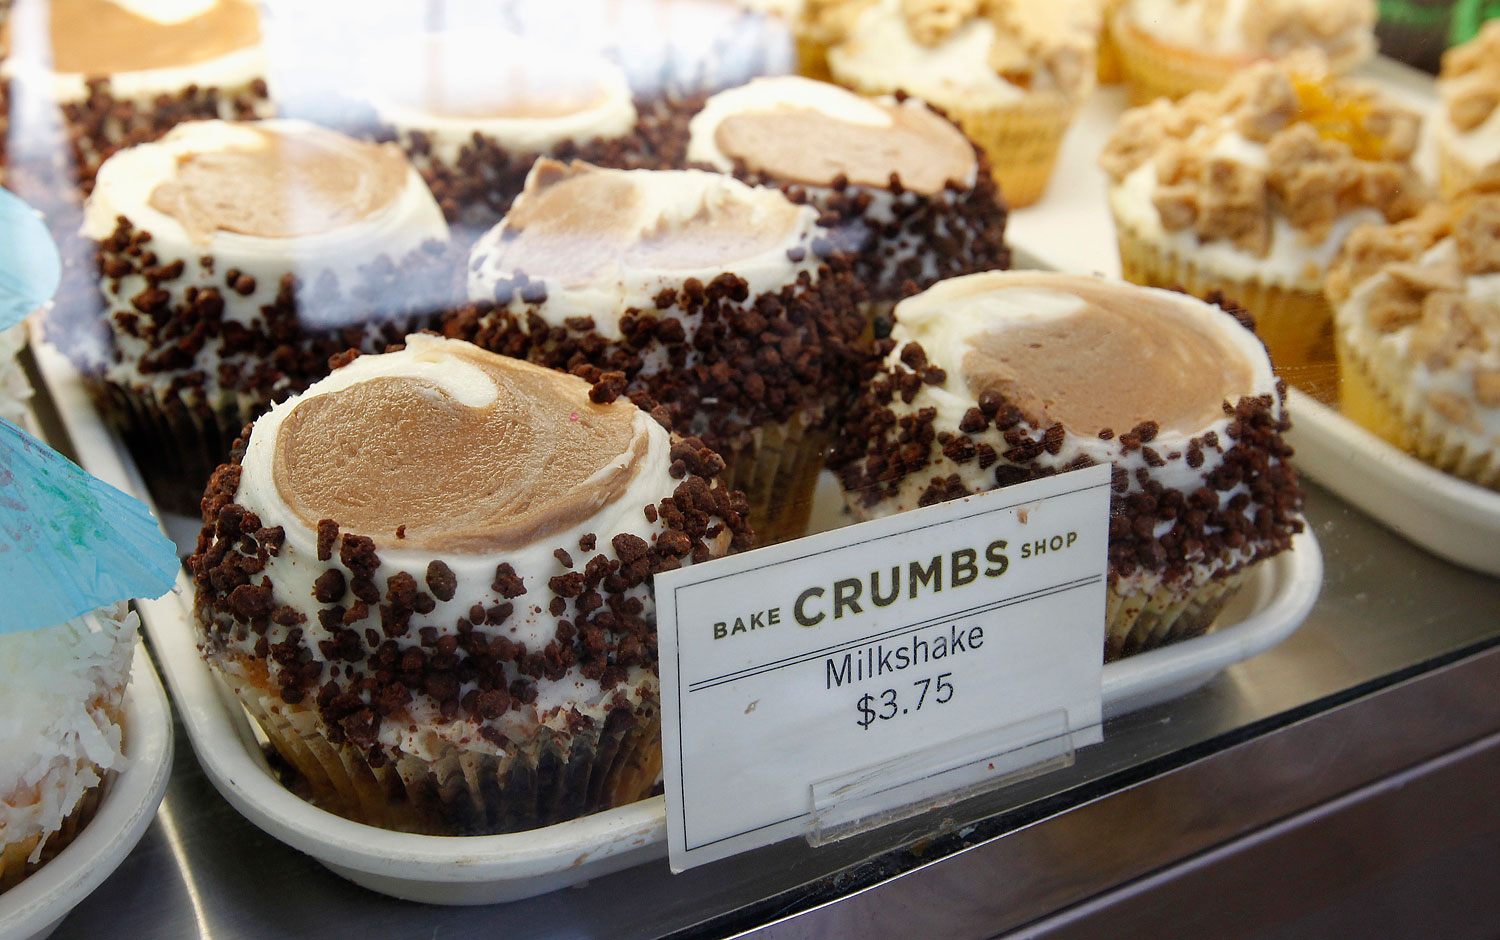 A tray of cupcakes is pictured at a Crumbs Bake Shop in Hollywood, June 29, 2011.